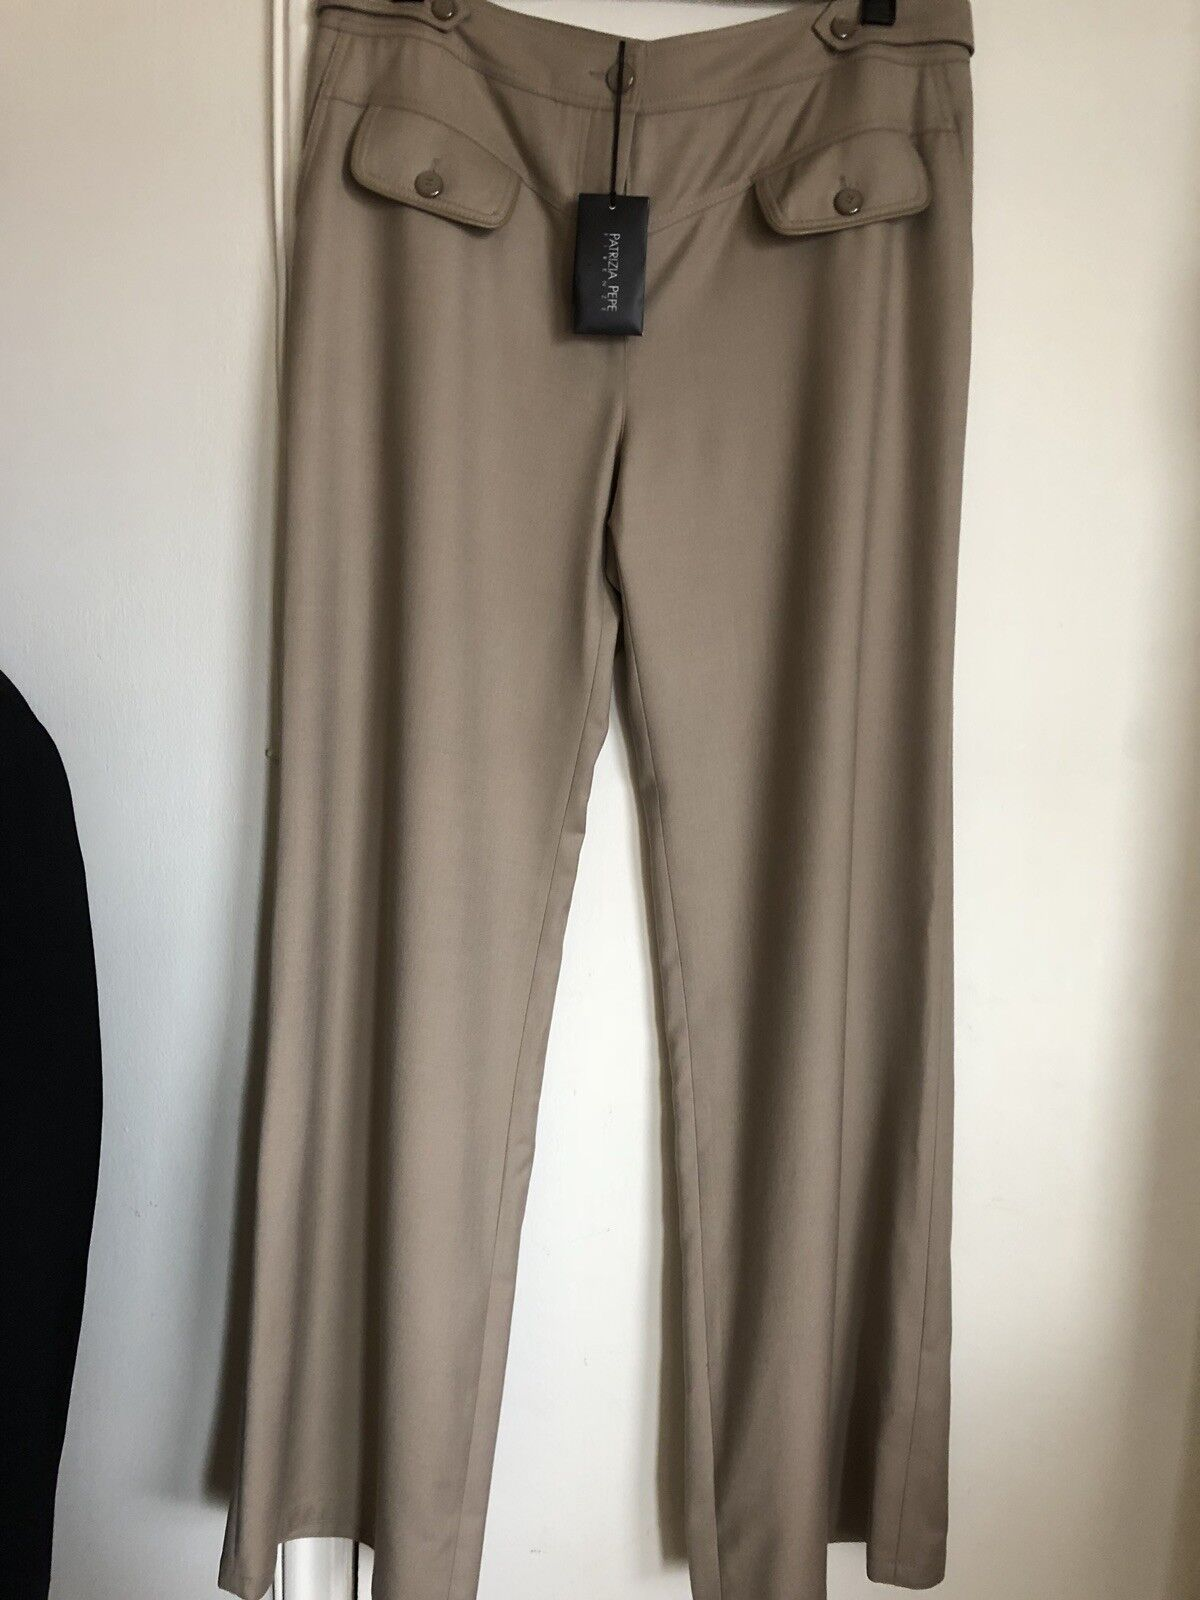 New Patrizia Pepe Ladies Pants With Tag Authentic Beige 44.Made In .